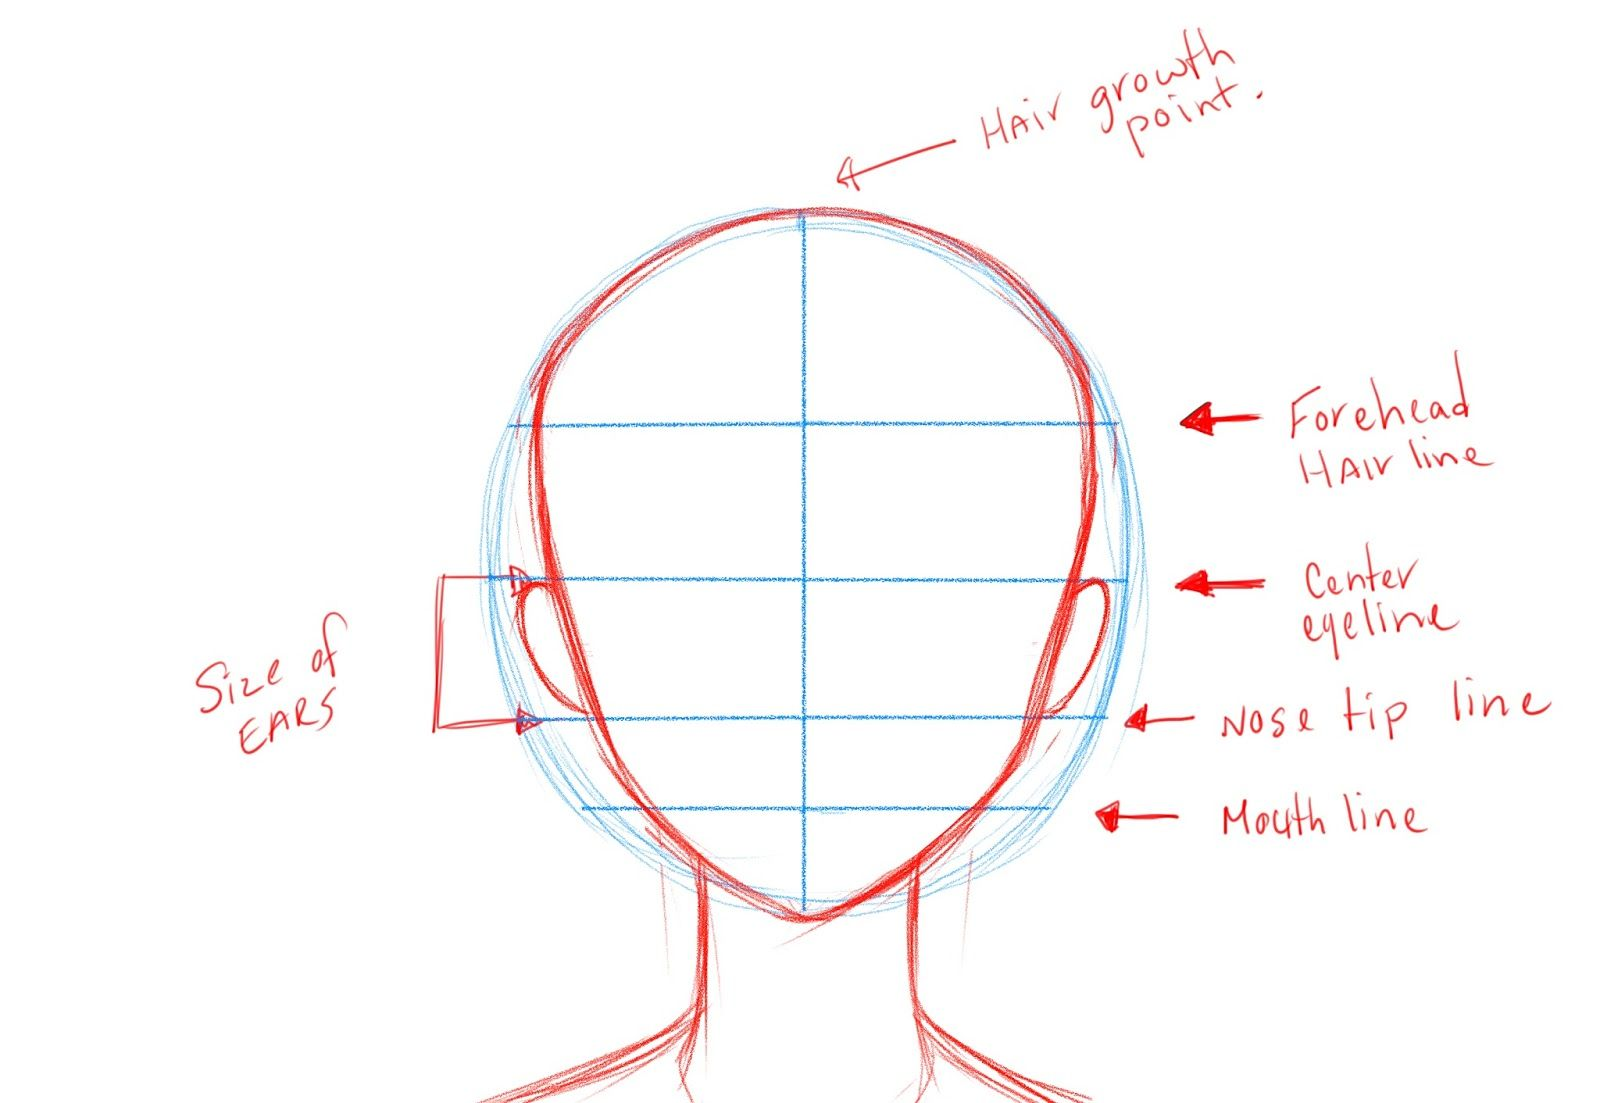 Anime Face Template Anime Hair Anime And How To Draw Anime On Anime Drawings Anime Drawing Styles Drawing Templates